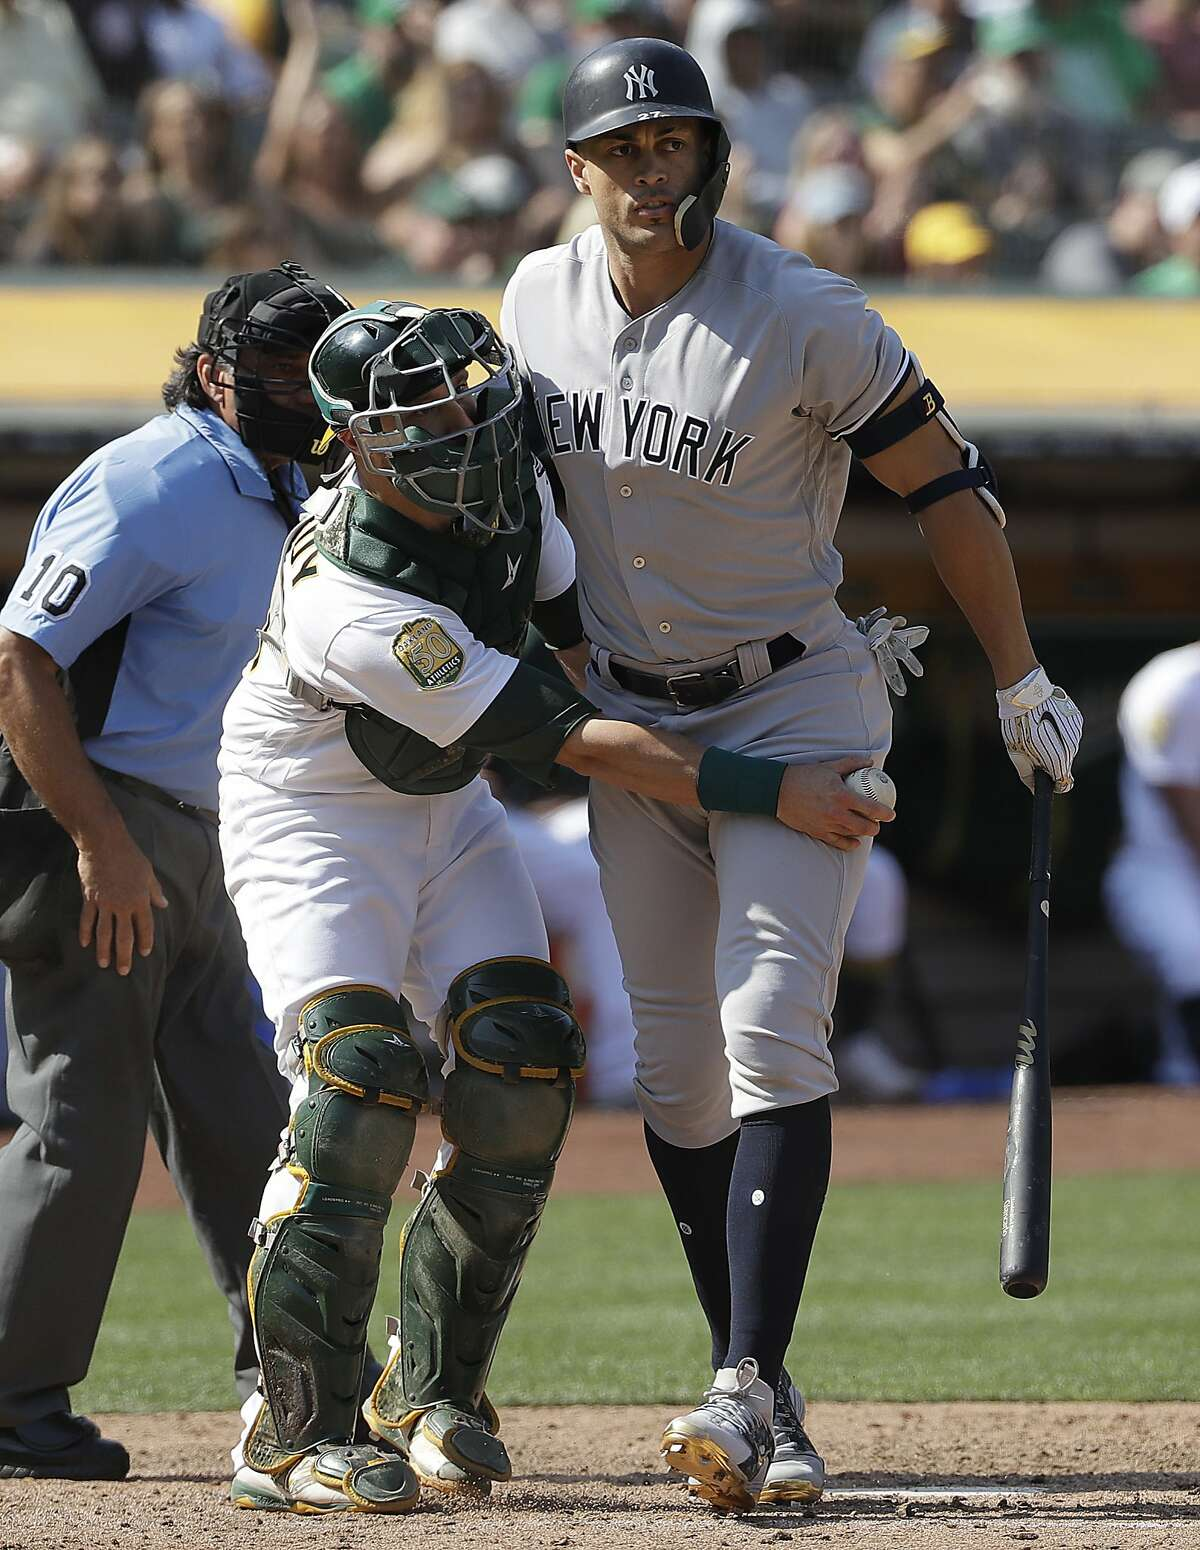 Oakland Athletics catcher Jonathan Lucroy, center, tags New York Yankees' Giancarlo Stanton after Stanton struck out during the eighth inning of a baseball game in Oakland, Calif., Monday, Sept. 3, 2018. (AP Photo/Jeff Chiu)